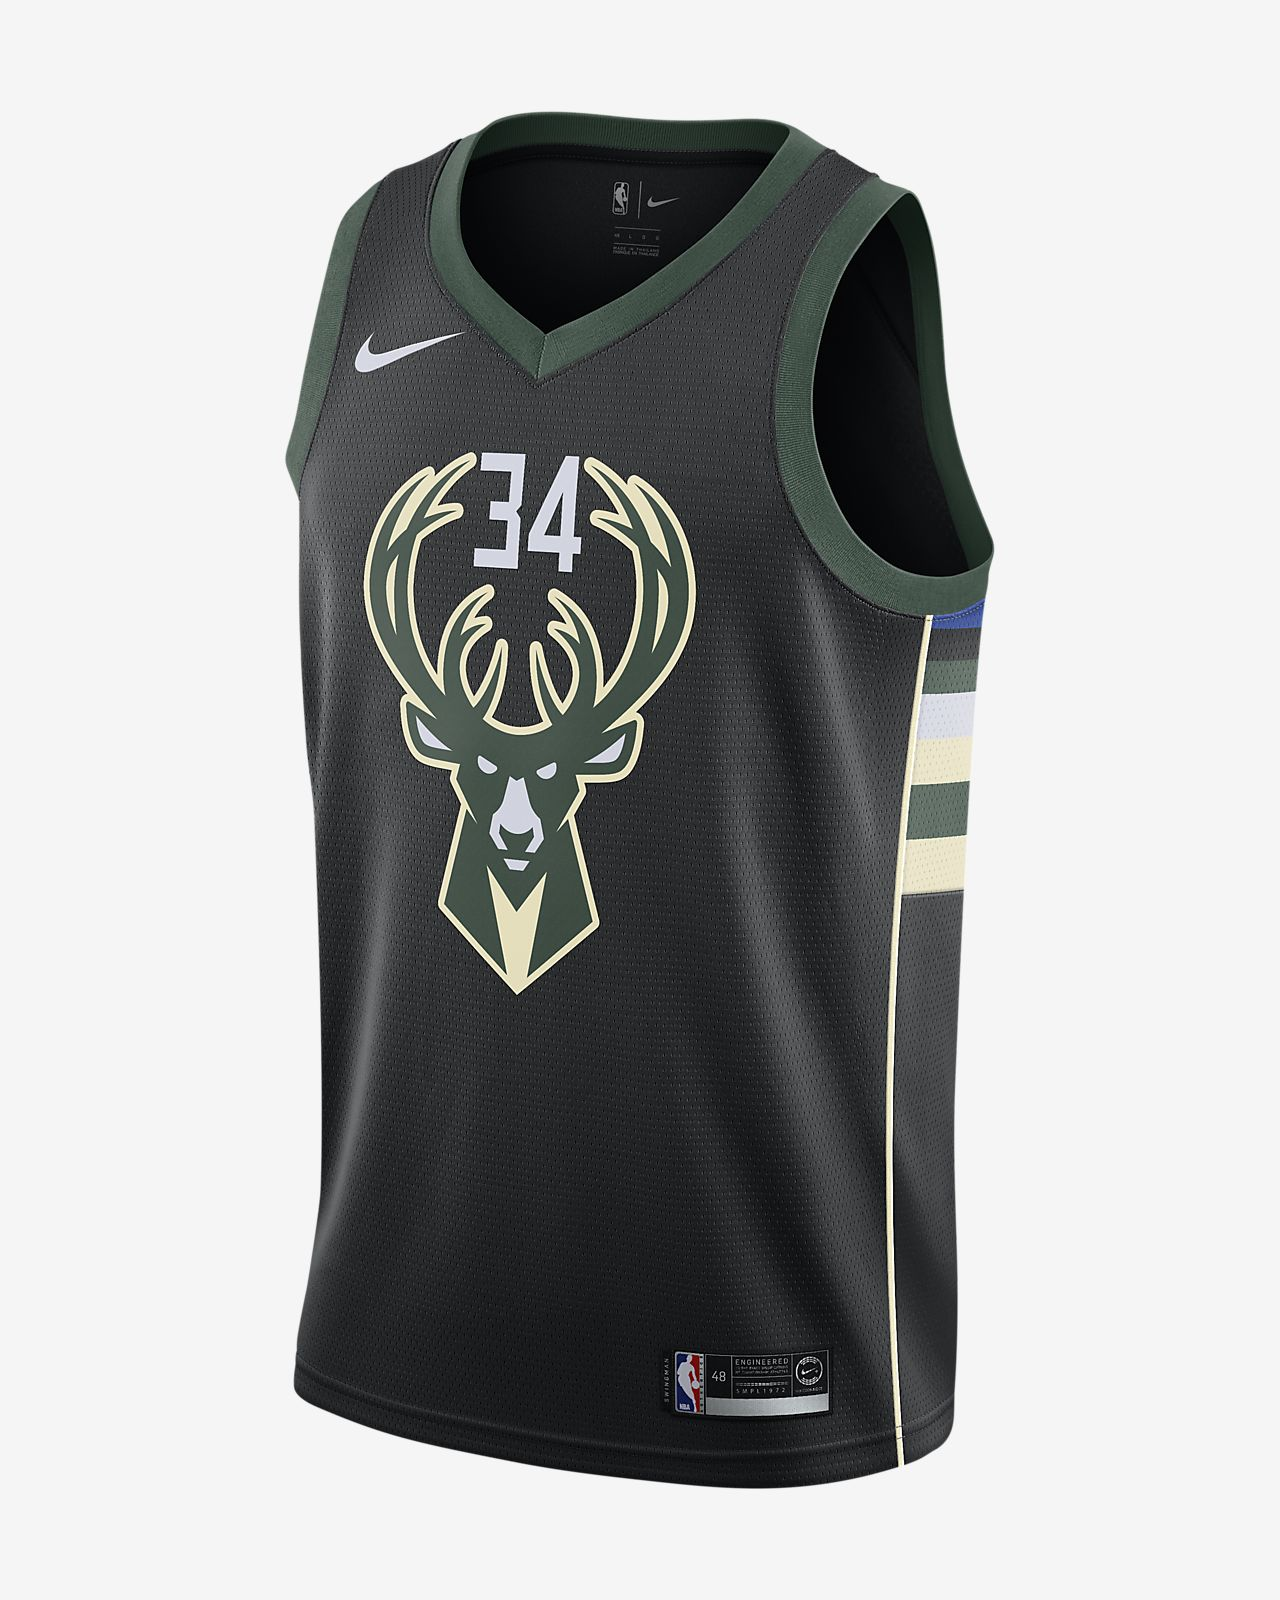 fdca3262b Men s Nike NBA Connected Jersey. Giannis Antetokounmpo Statement Edition  Swingman (Milwaukee Bucks)